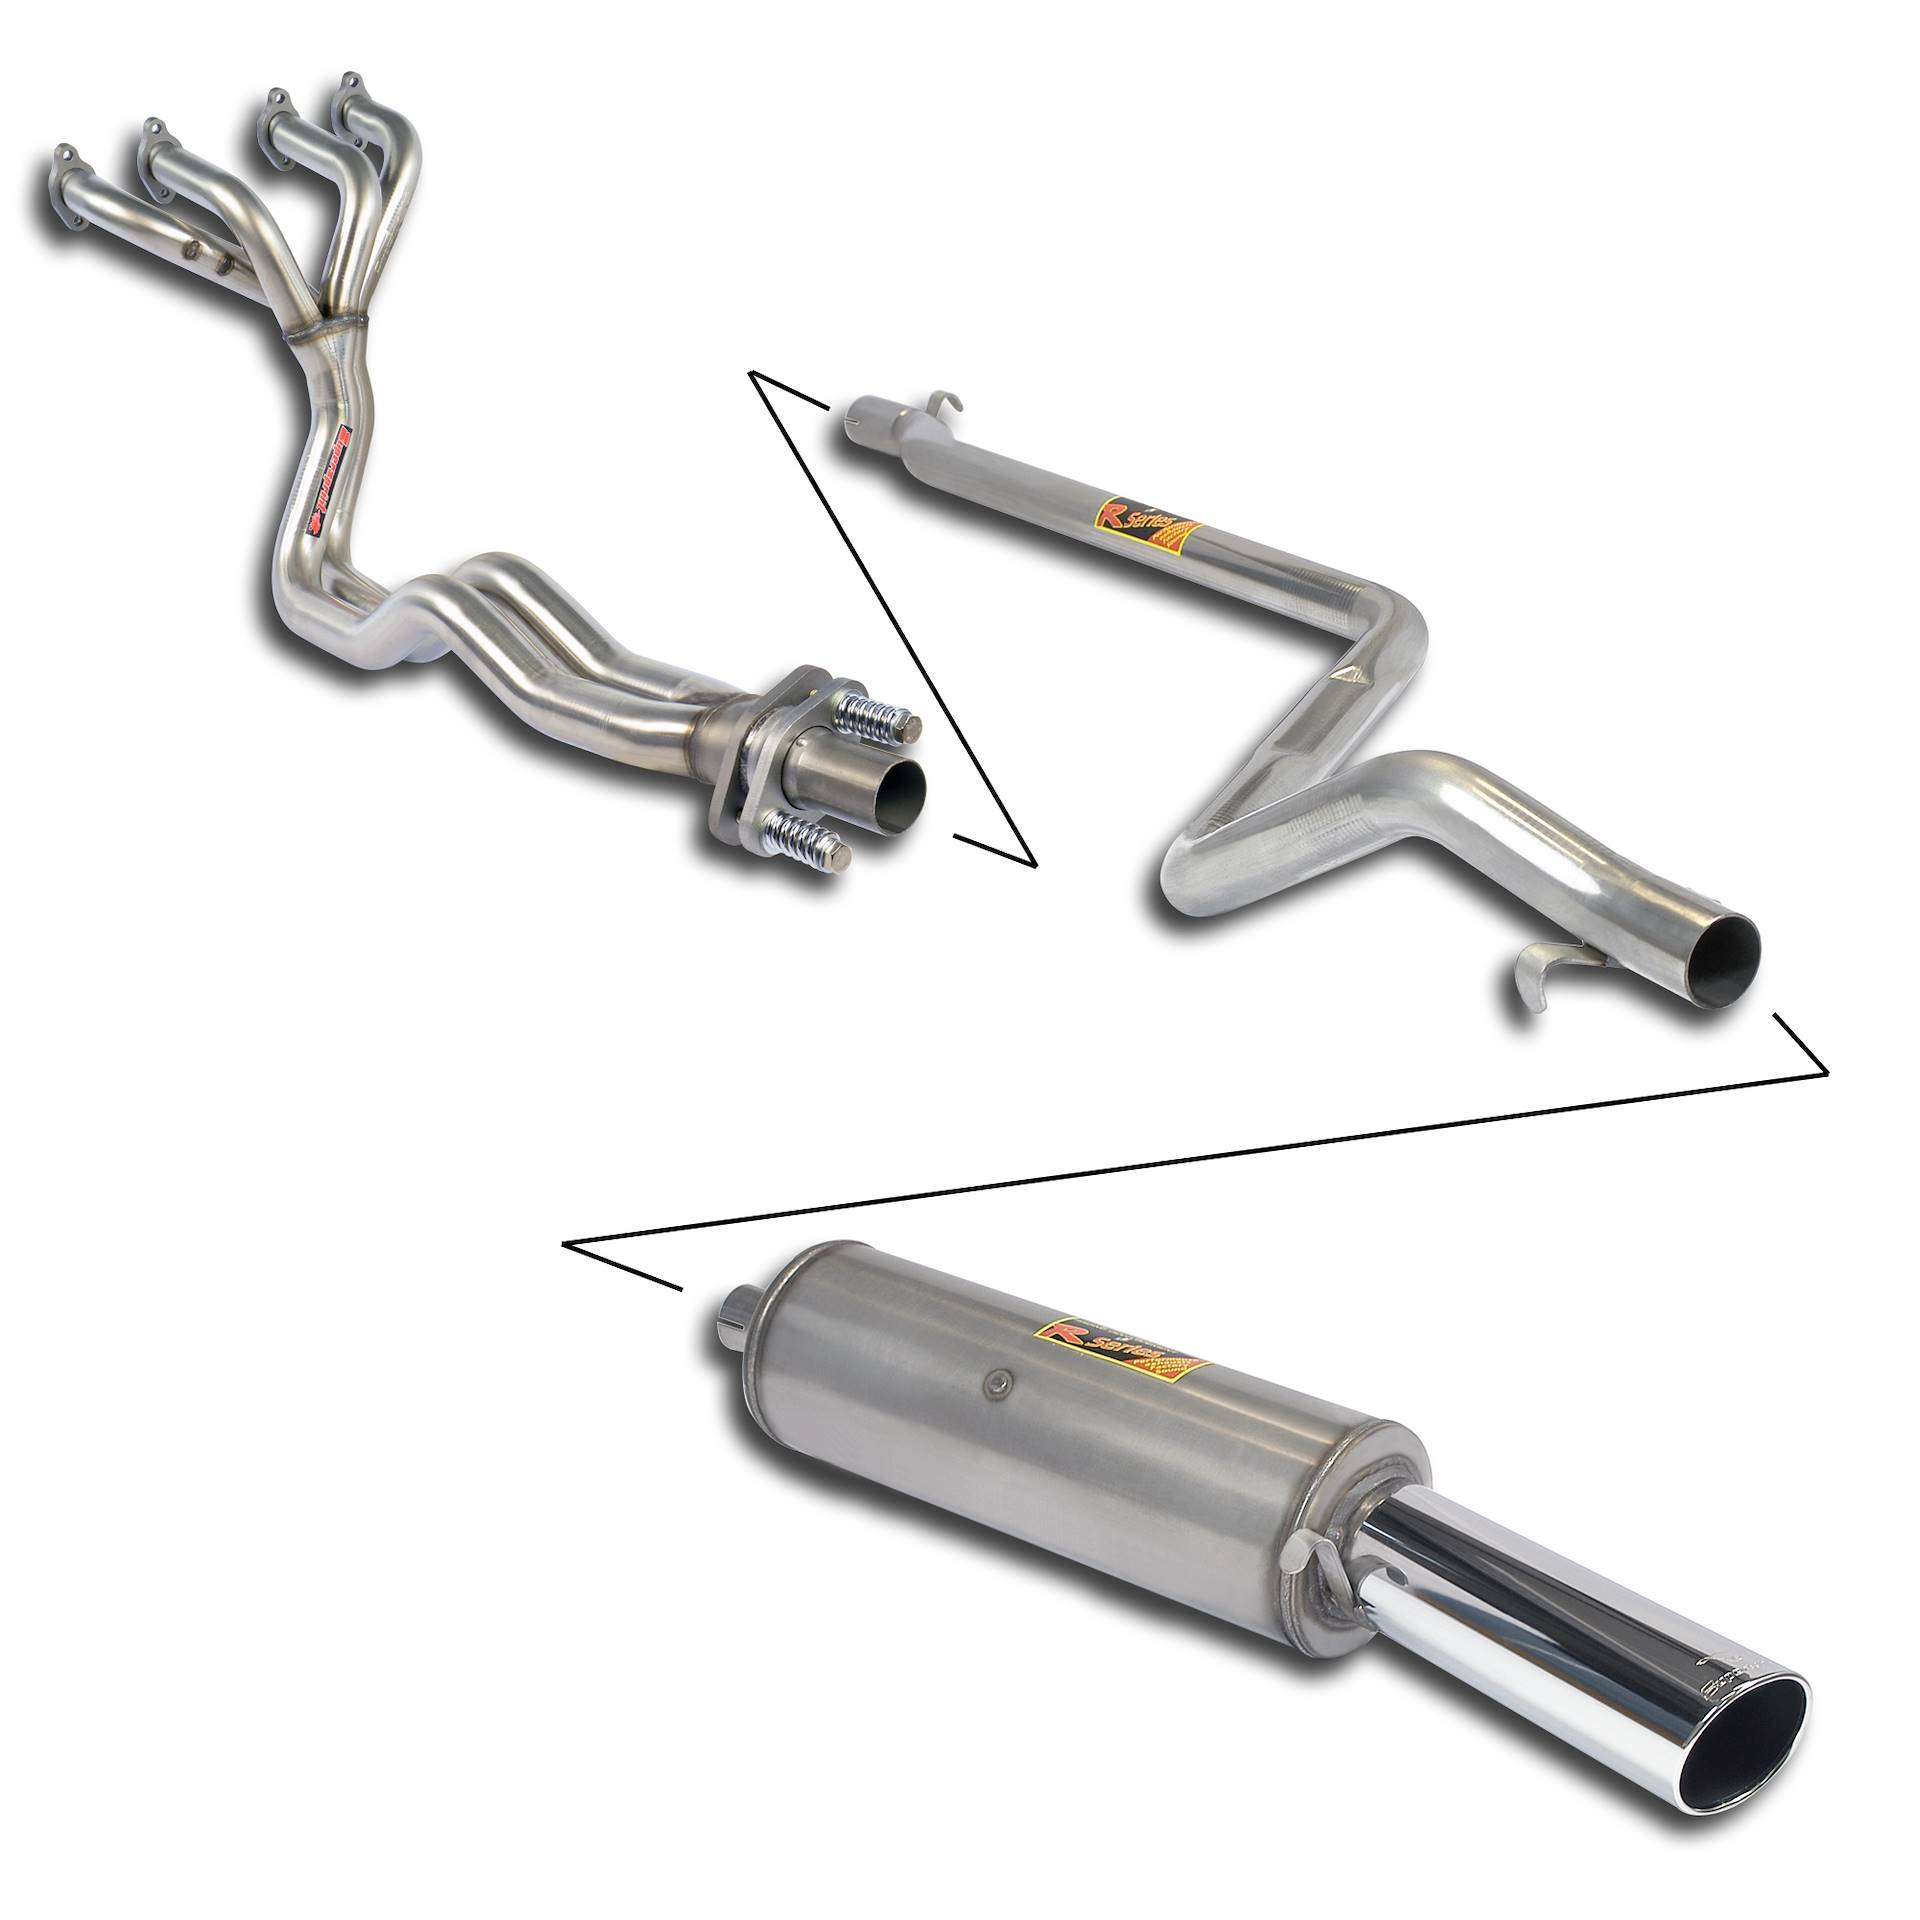 "Volkswagen - VW GOLF I GTi 1.8  8/'82 -> 11/'83 Sport performance pack ""4-2-1"", performance exhaust systems"